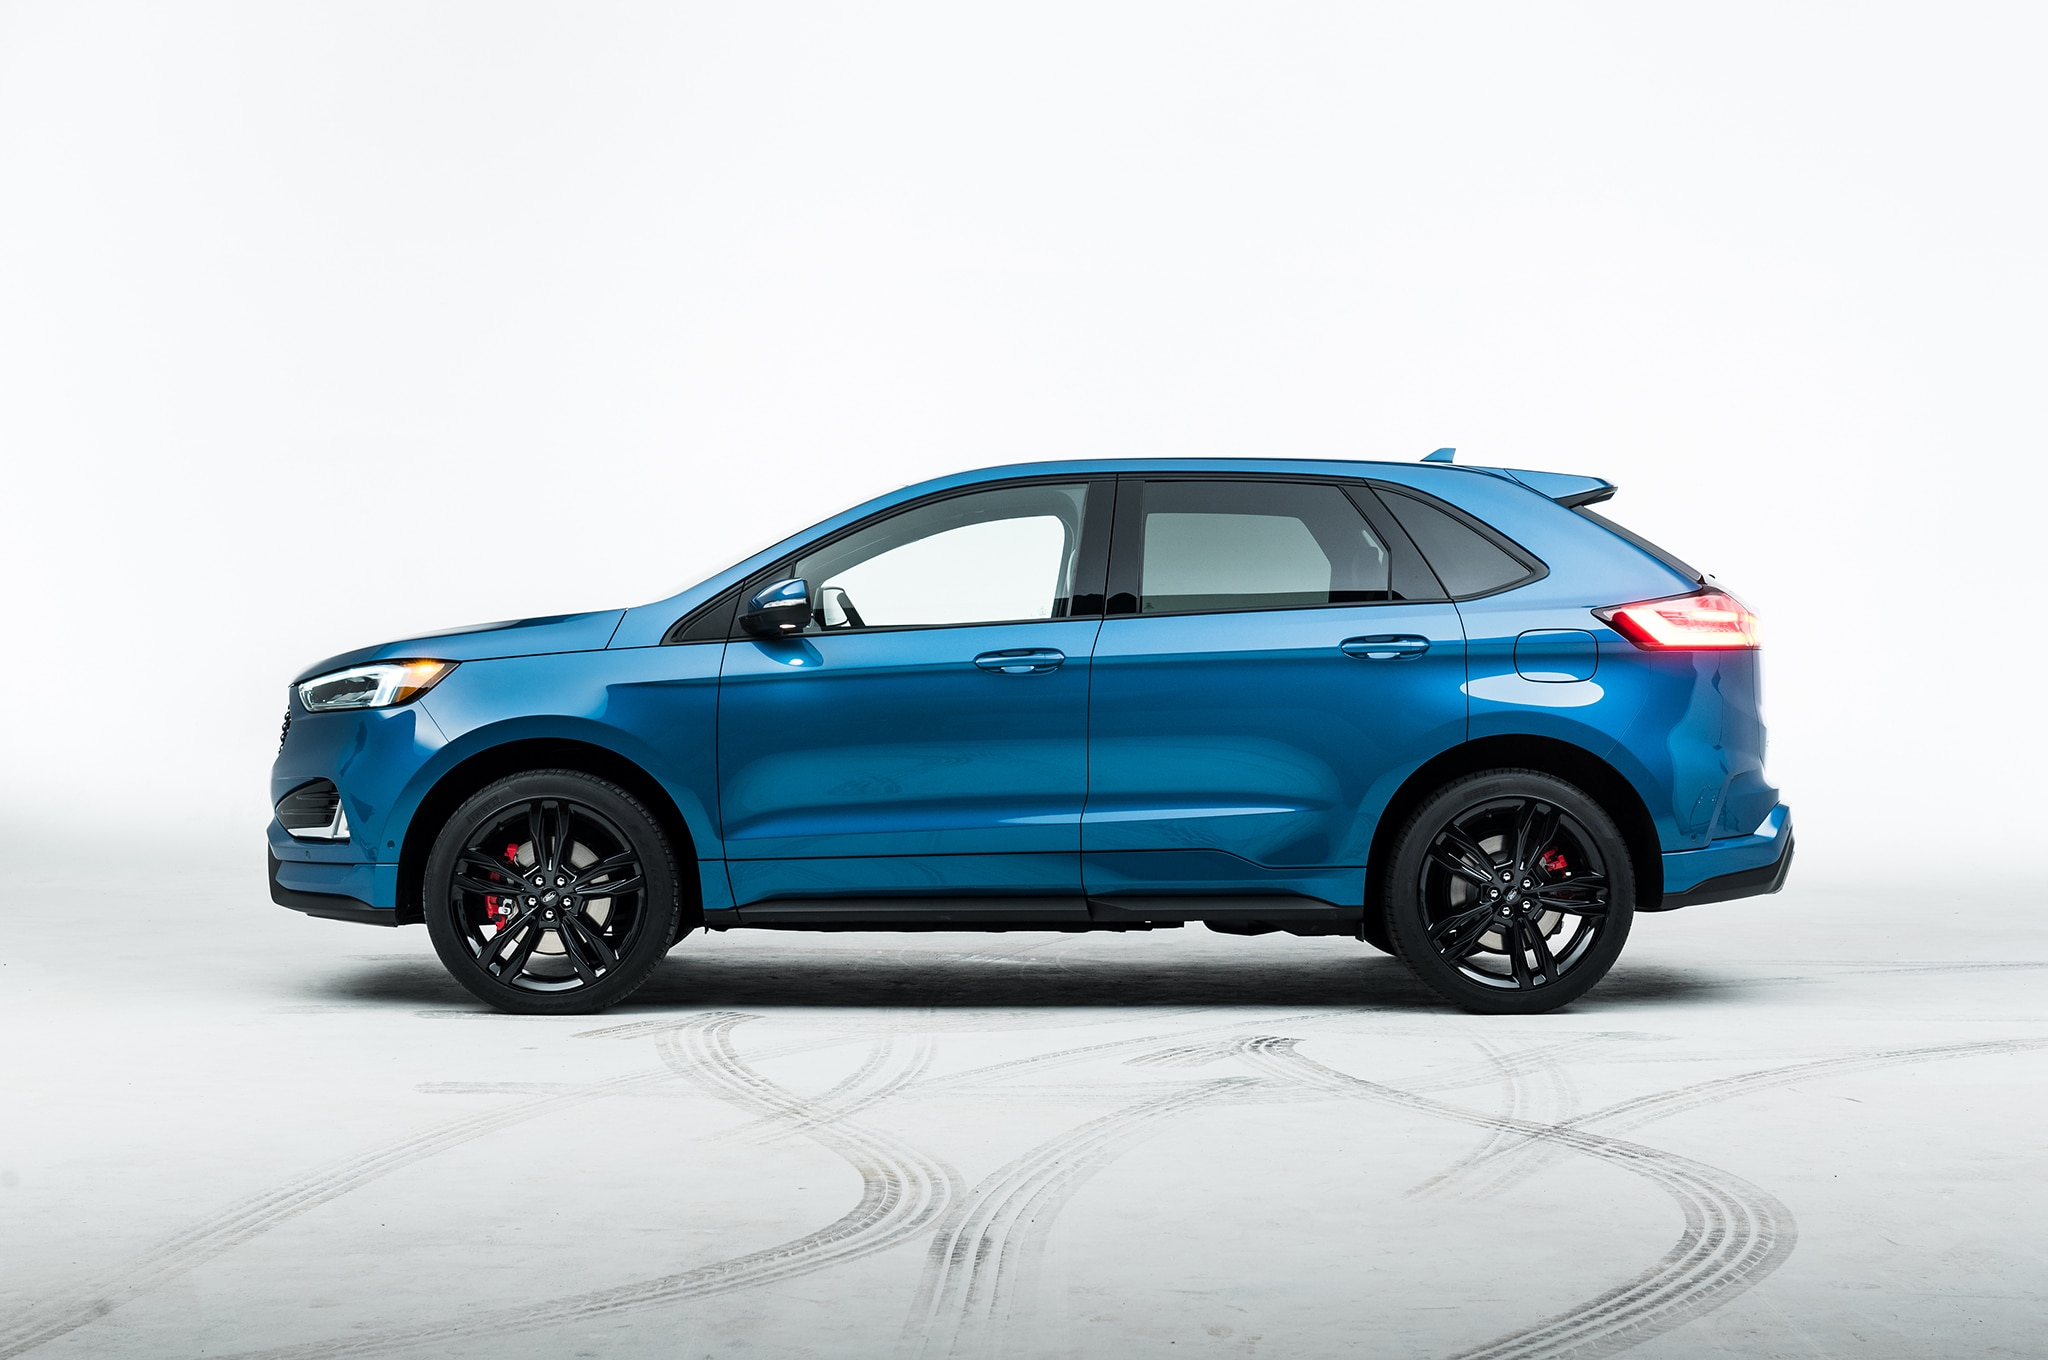 Less Certain Future So If Youre A Fan Of The Brands Sporty St Line Its Probably Time To Focus Your Enthusiasts Interests On The  Ford Edge